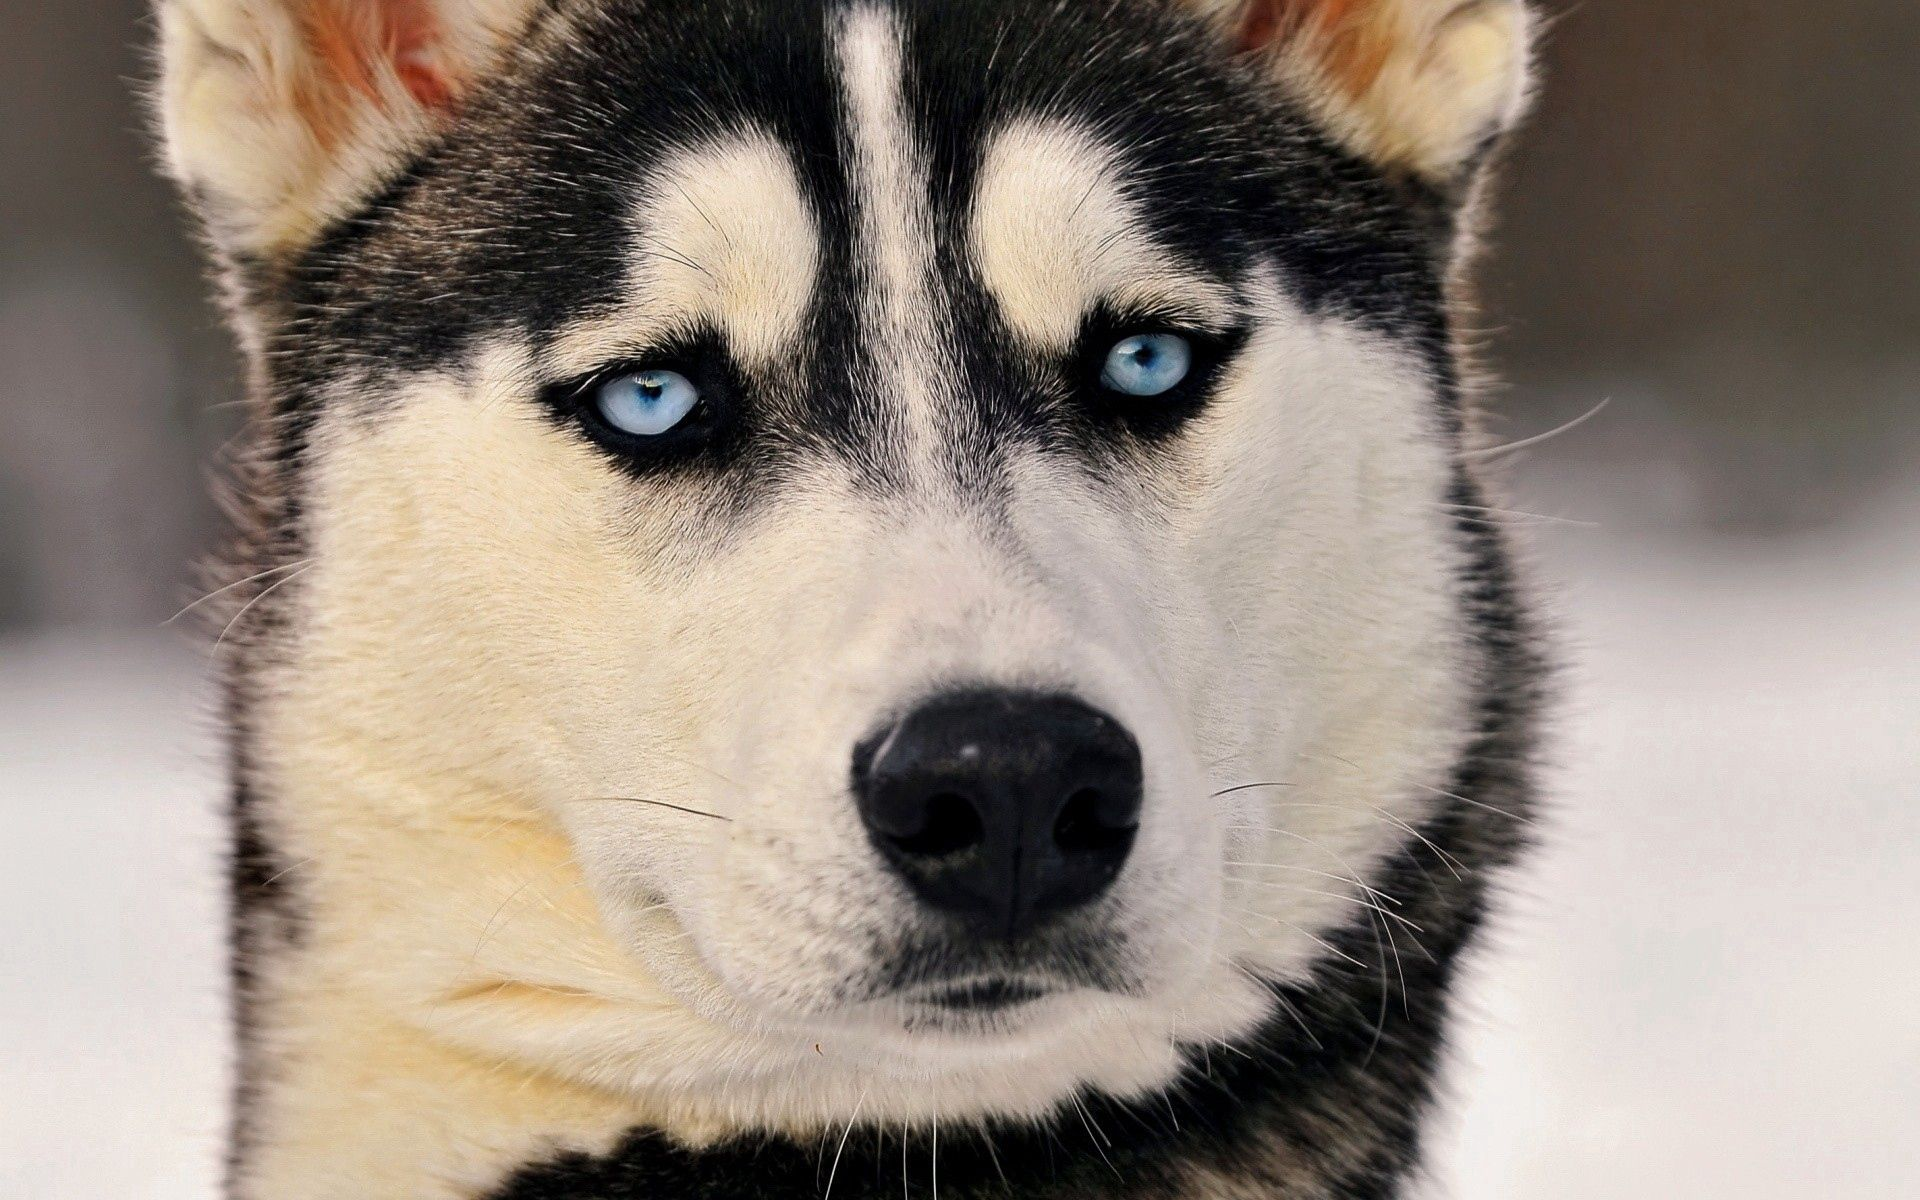 60989 Screensavers and Wallpapers Husky for phone. Download Animals, Dog, Muzzle, Sight, Opinion, Husky, Haska, Blue Eyed, Blue-Eyed pictures for free